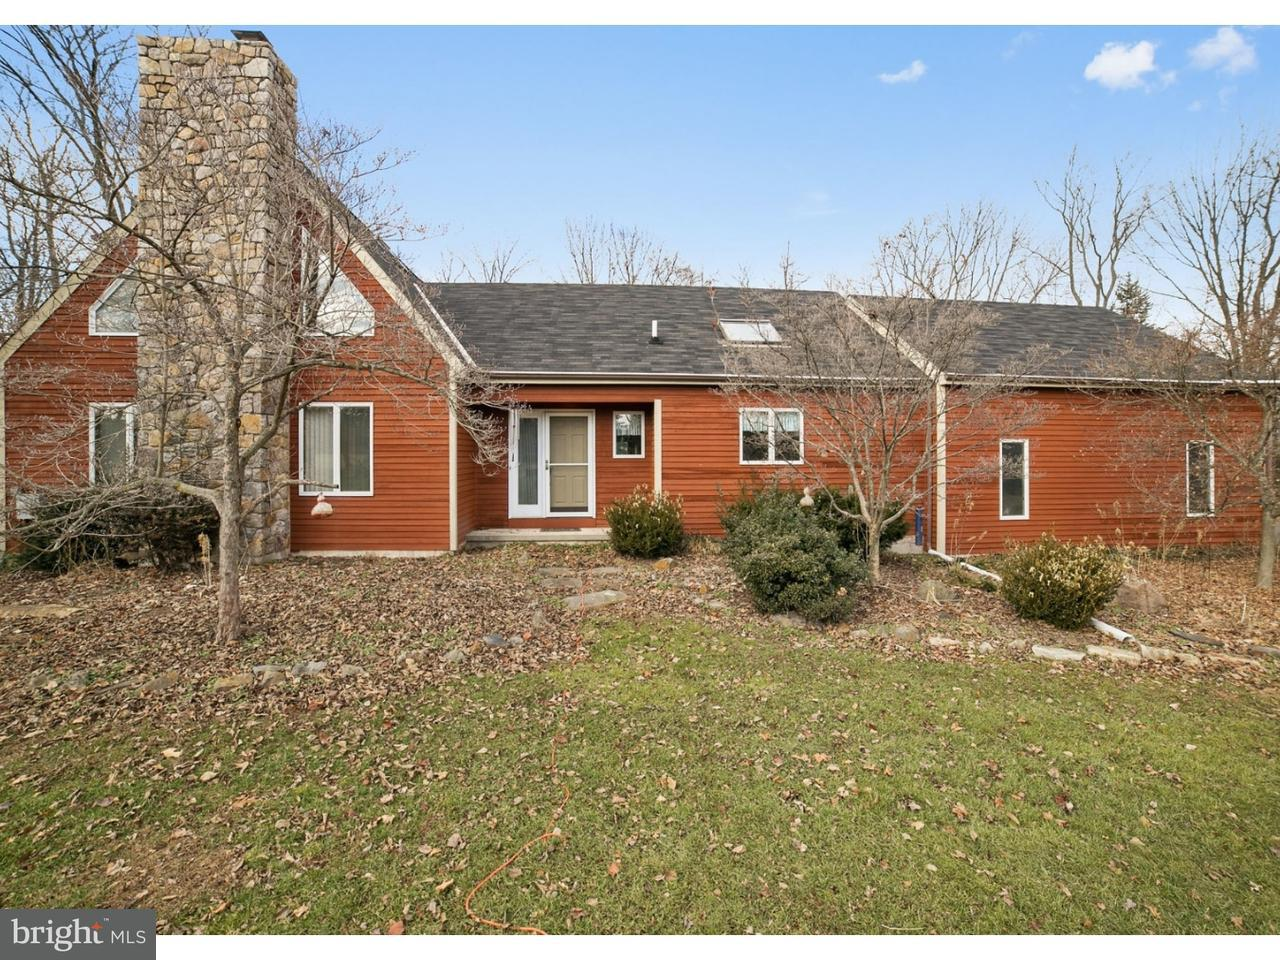 Single Family Home for Sale at 749 FAUST Road Perkiomenville, Pennsylvania 18074 United States